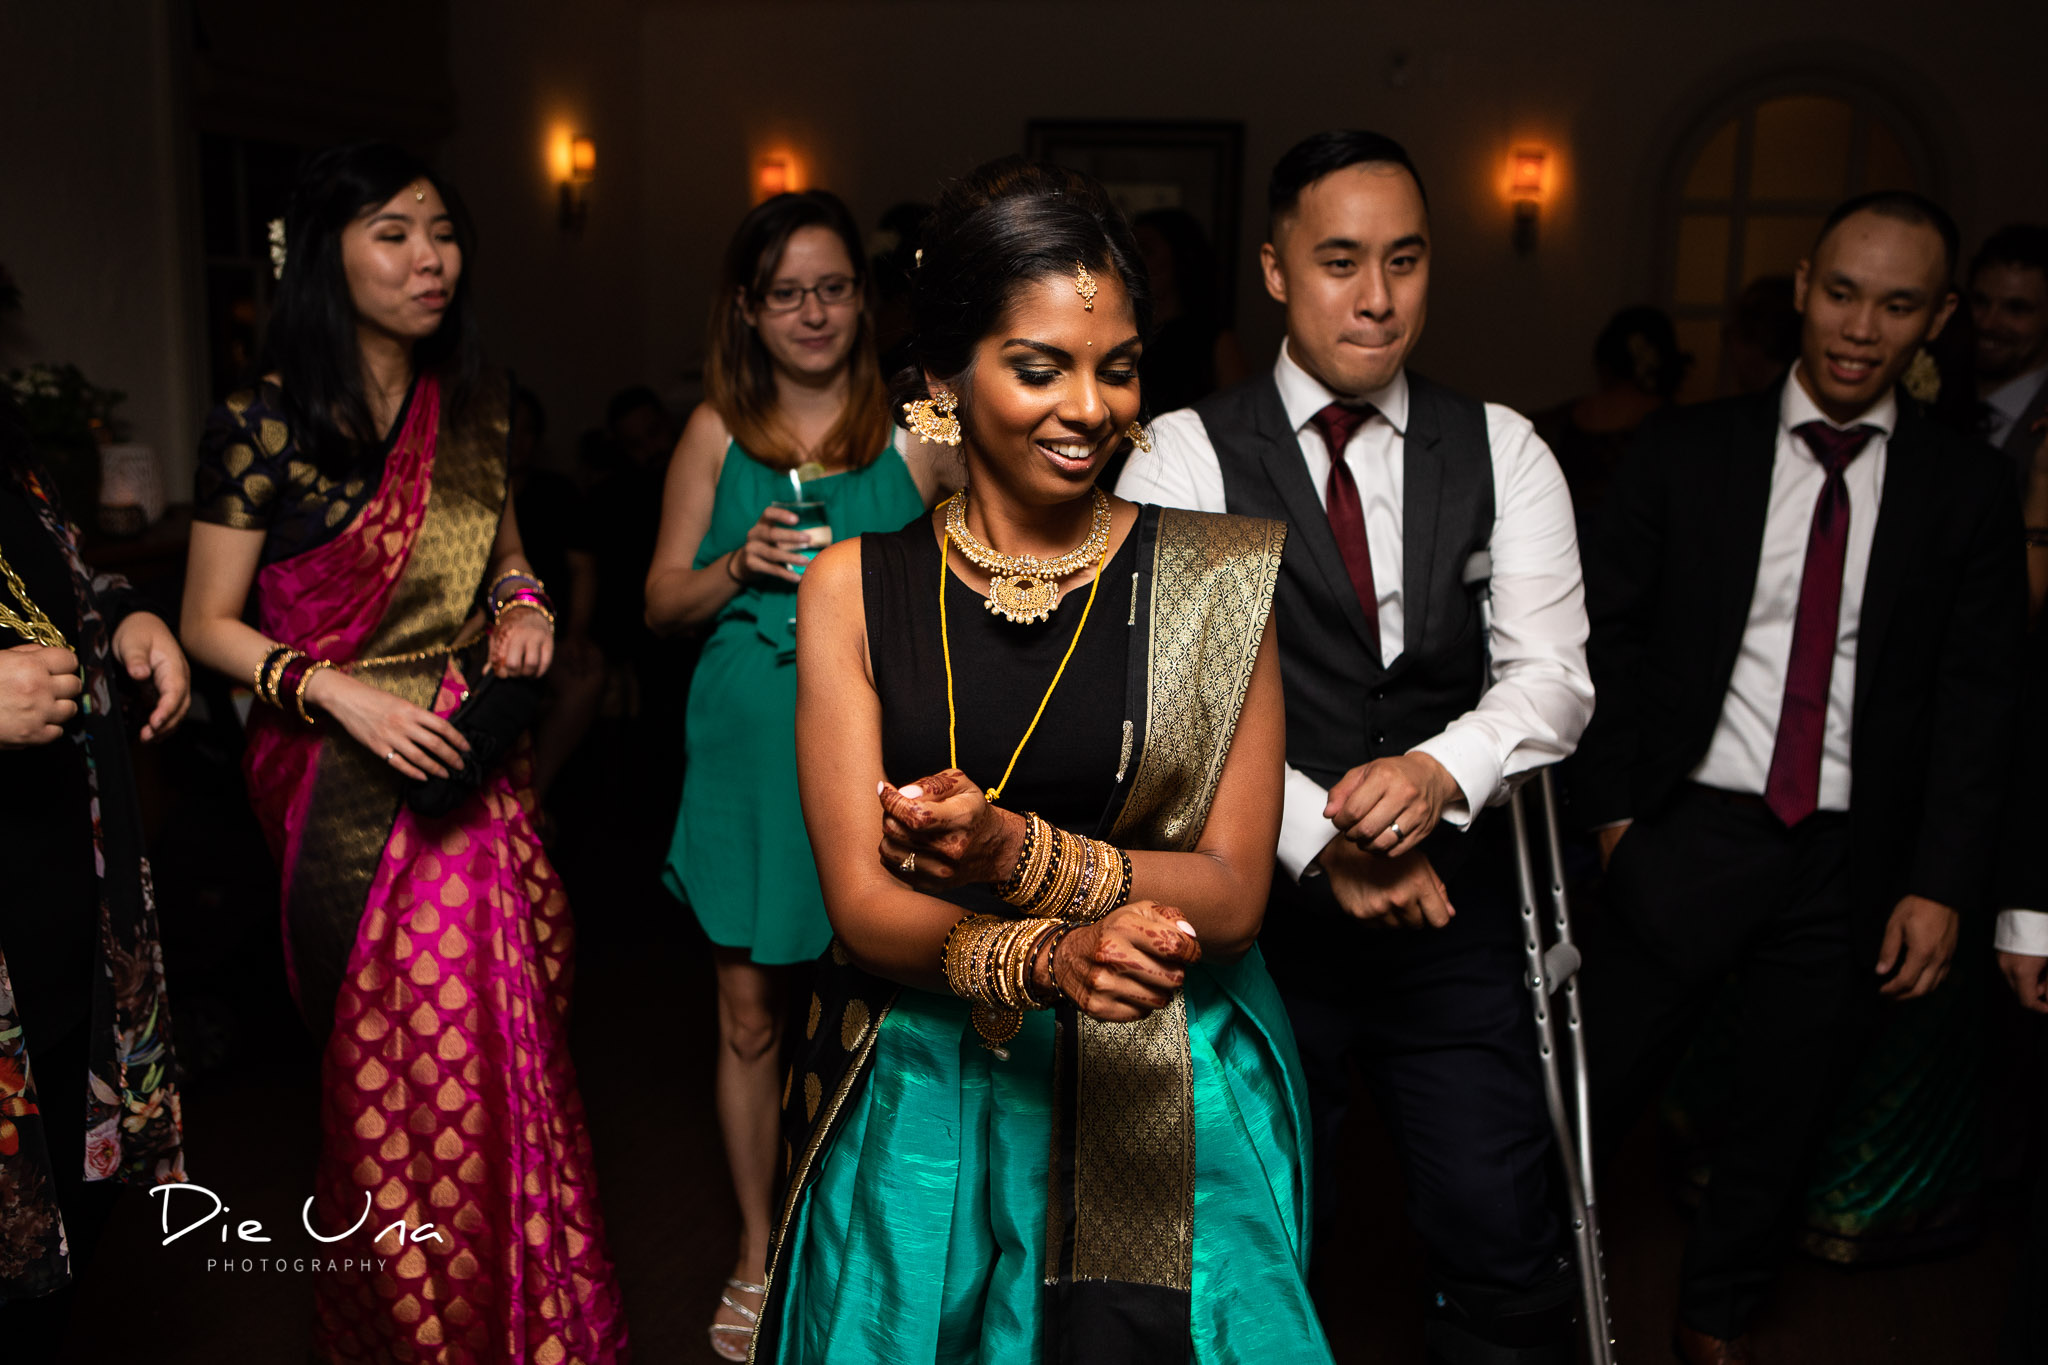 bride dancing during wedding reception.jpg